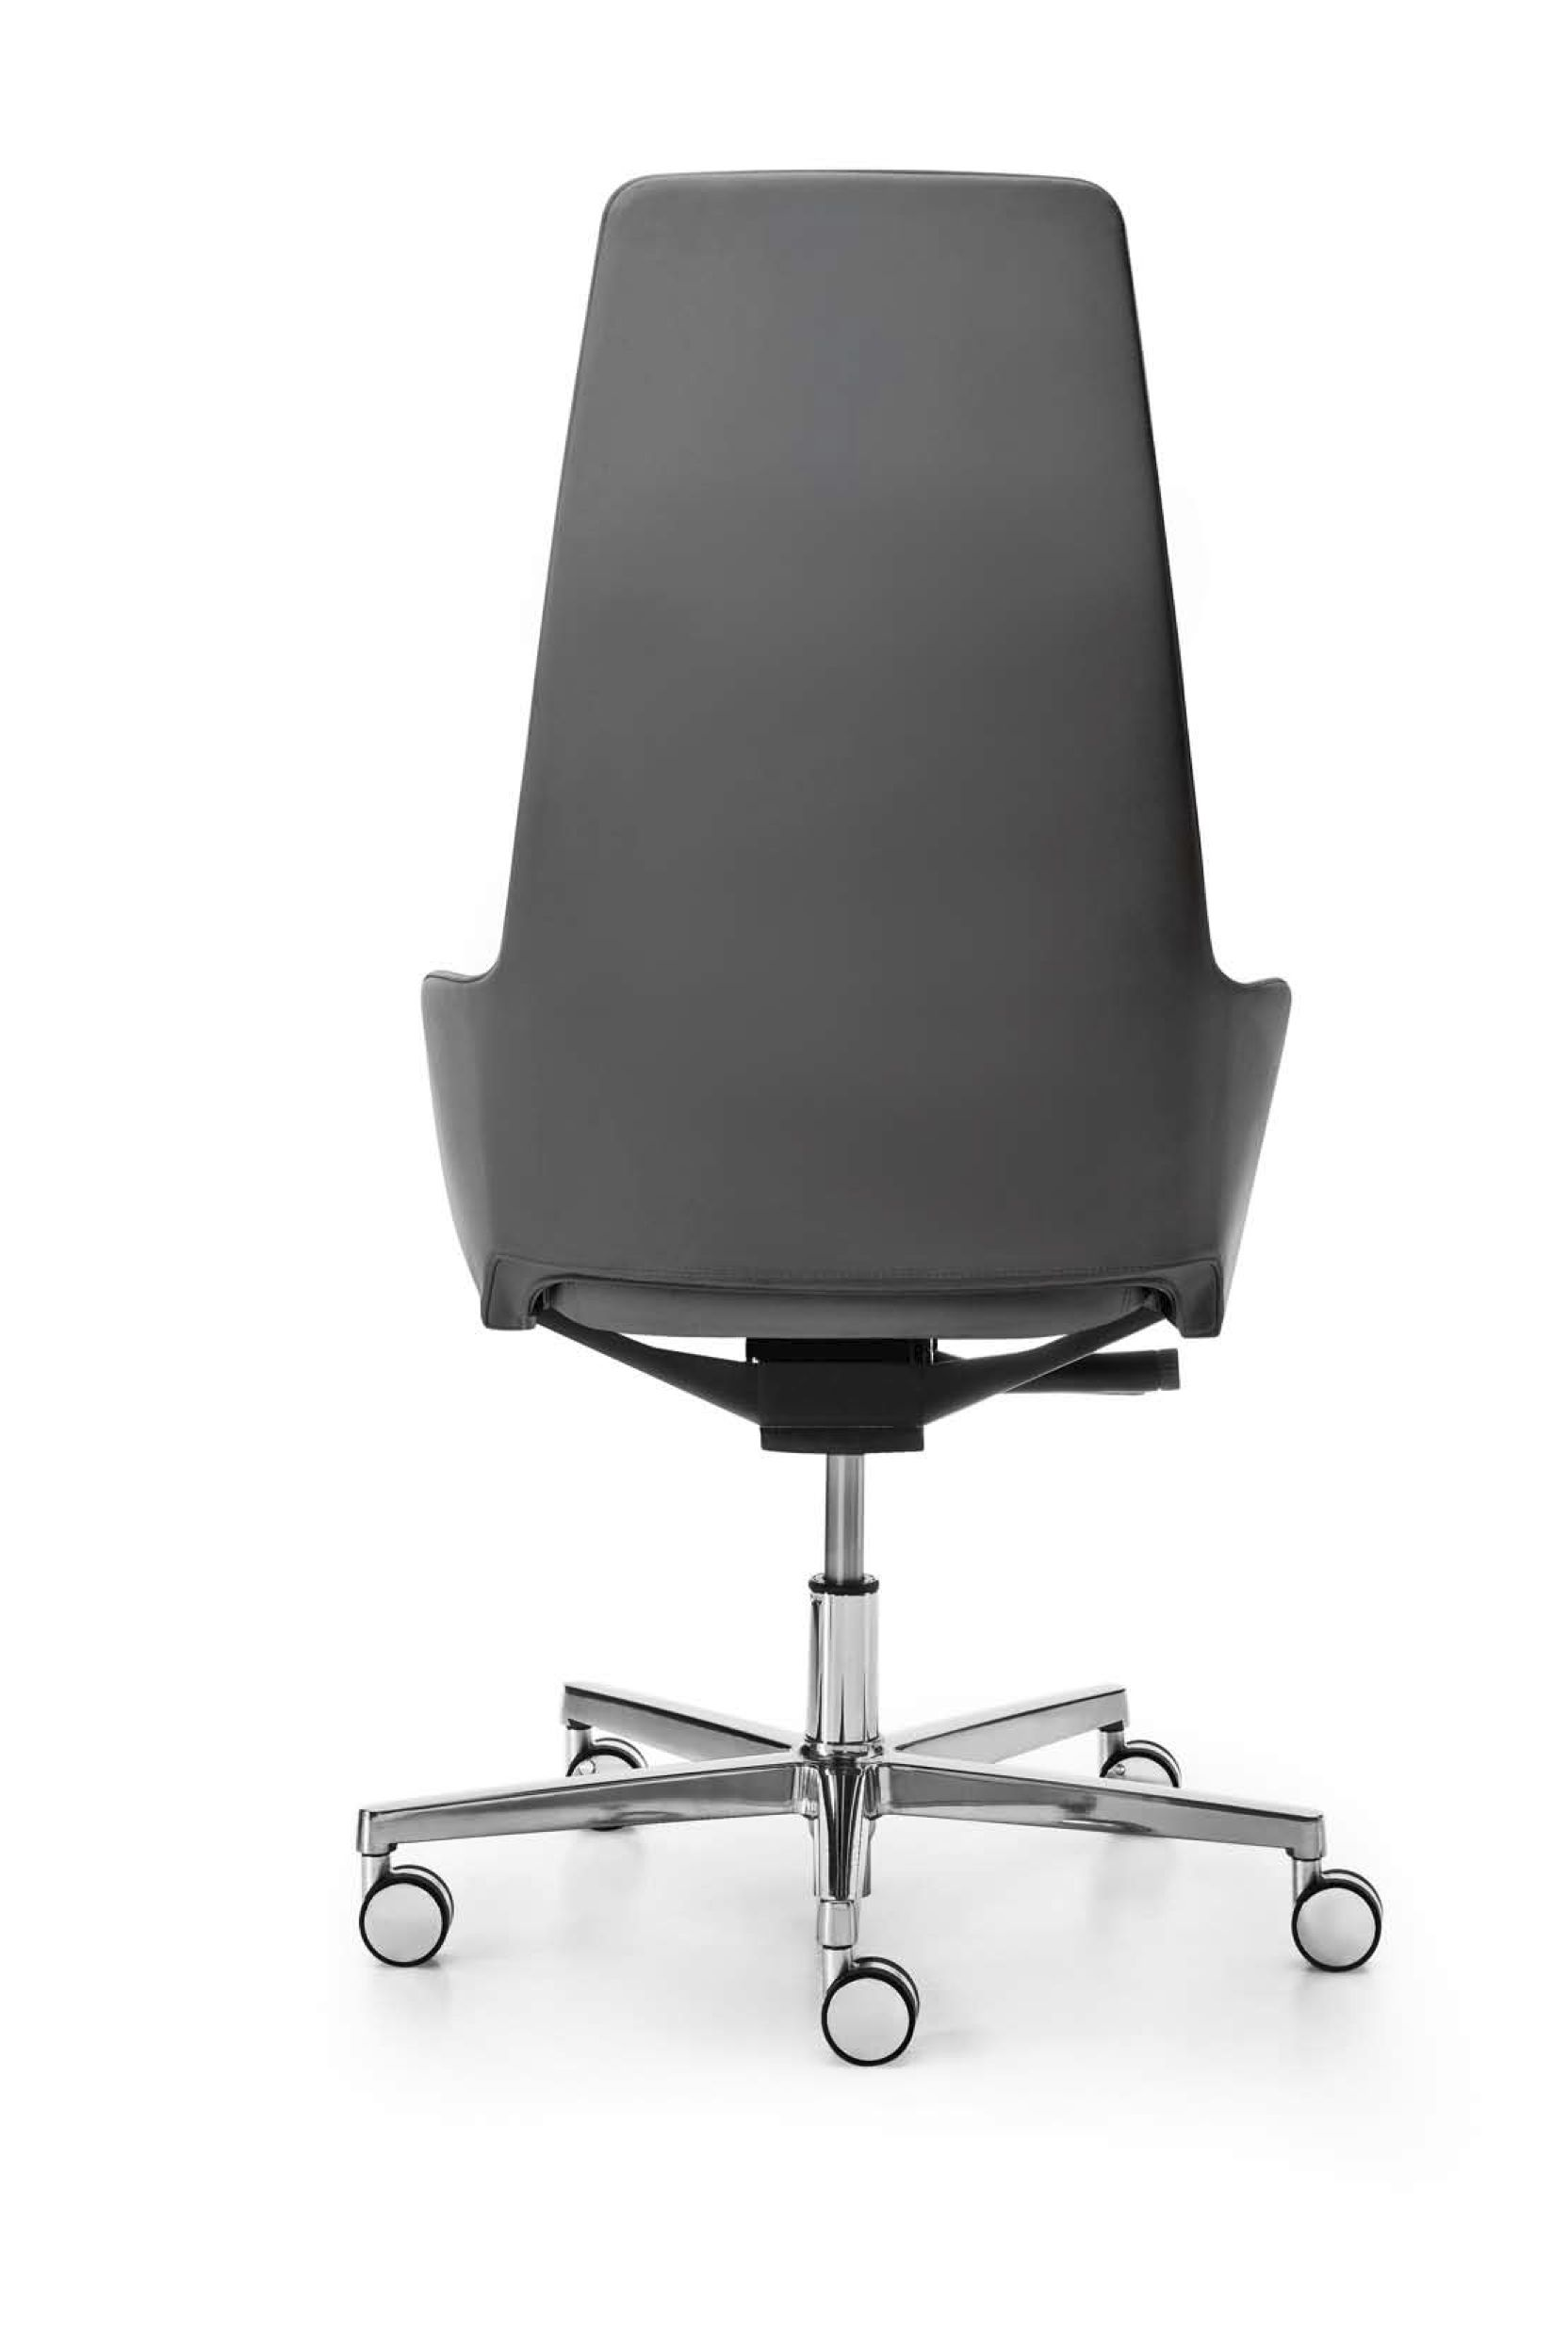 used desk chairs folding directors chair the captain can be as an executive boardroom or at home in study